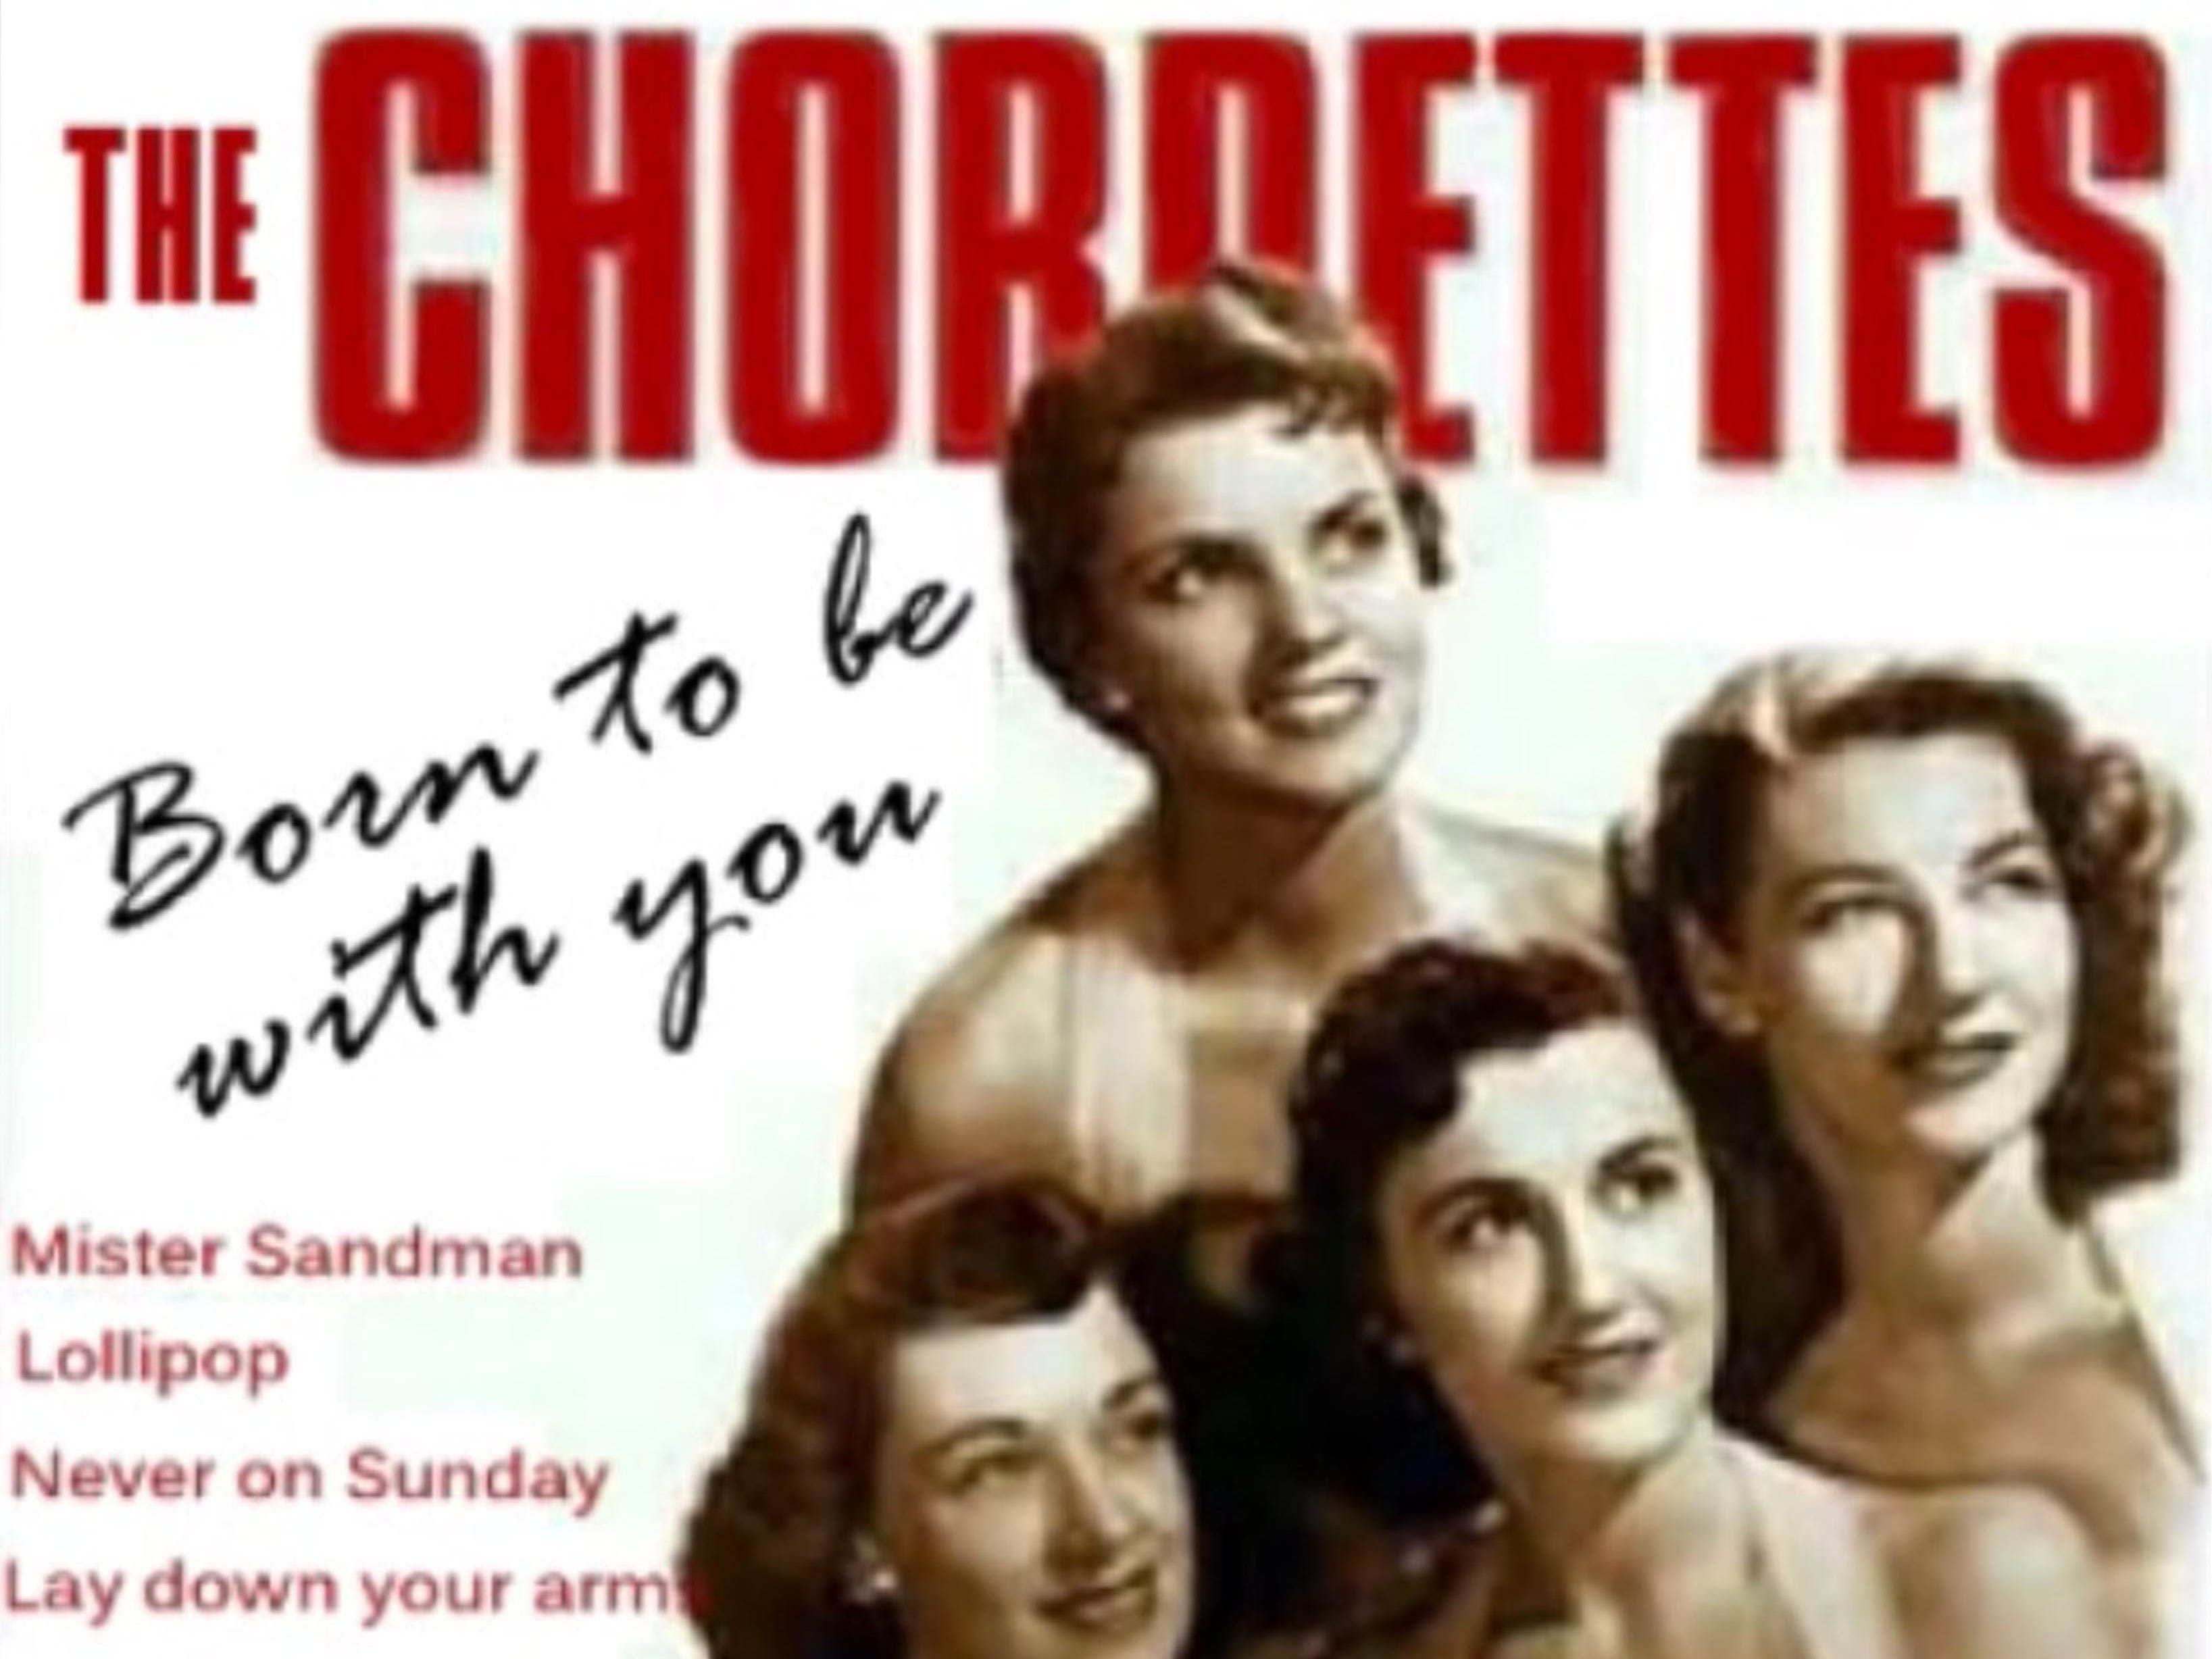 The Chrodettes on an album cover from a YouTube video recording of an album from the group.https://www.youtube.com/watch?v=A0kd-w7Xwd8